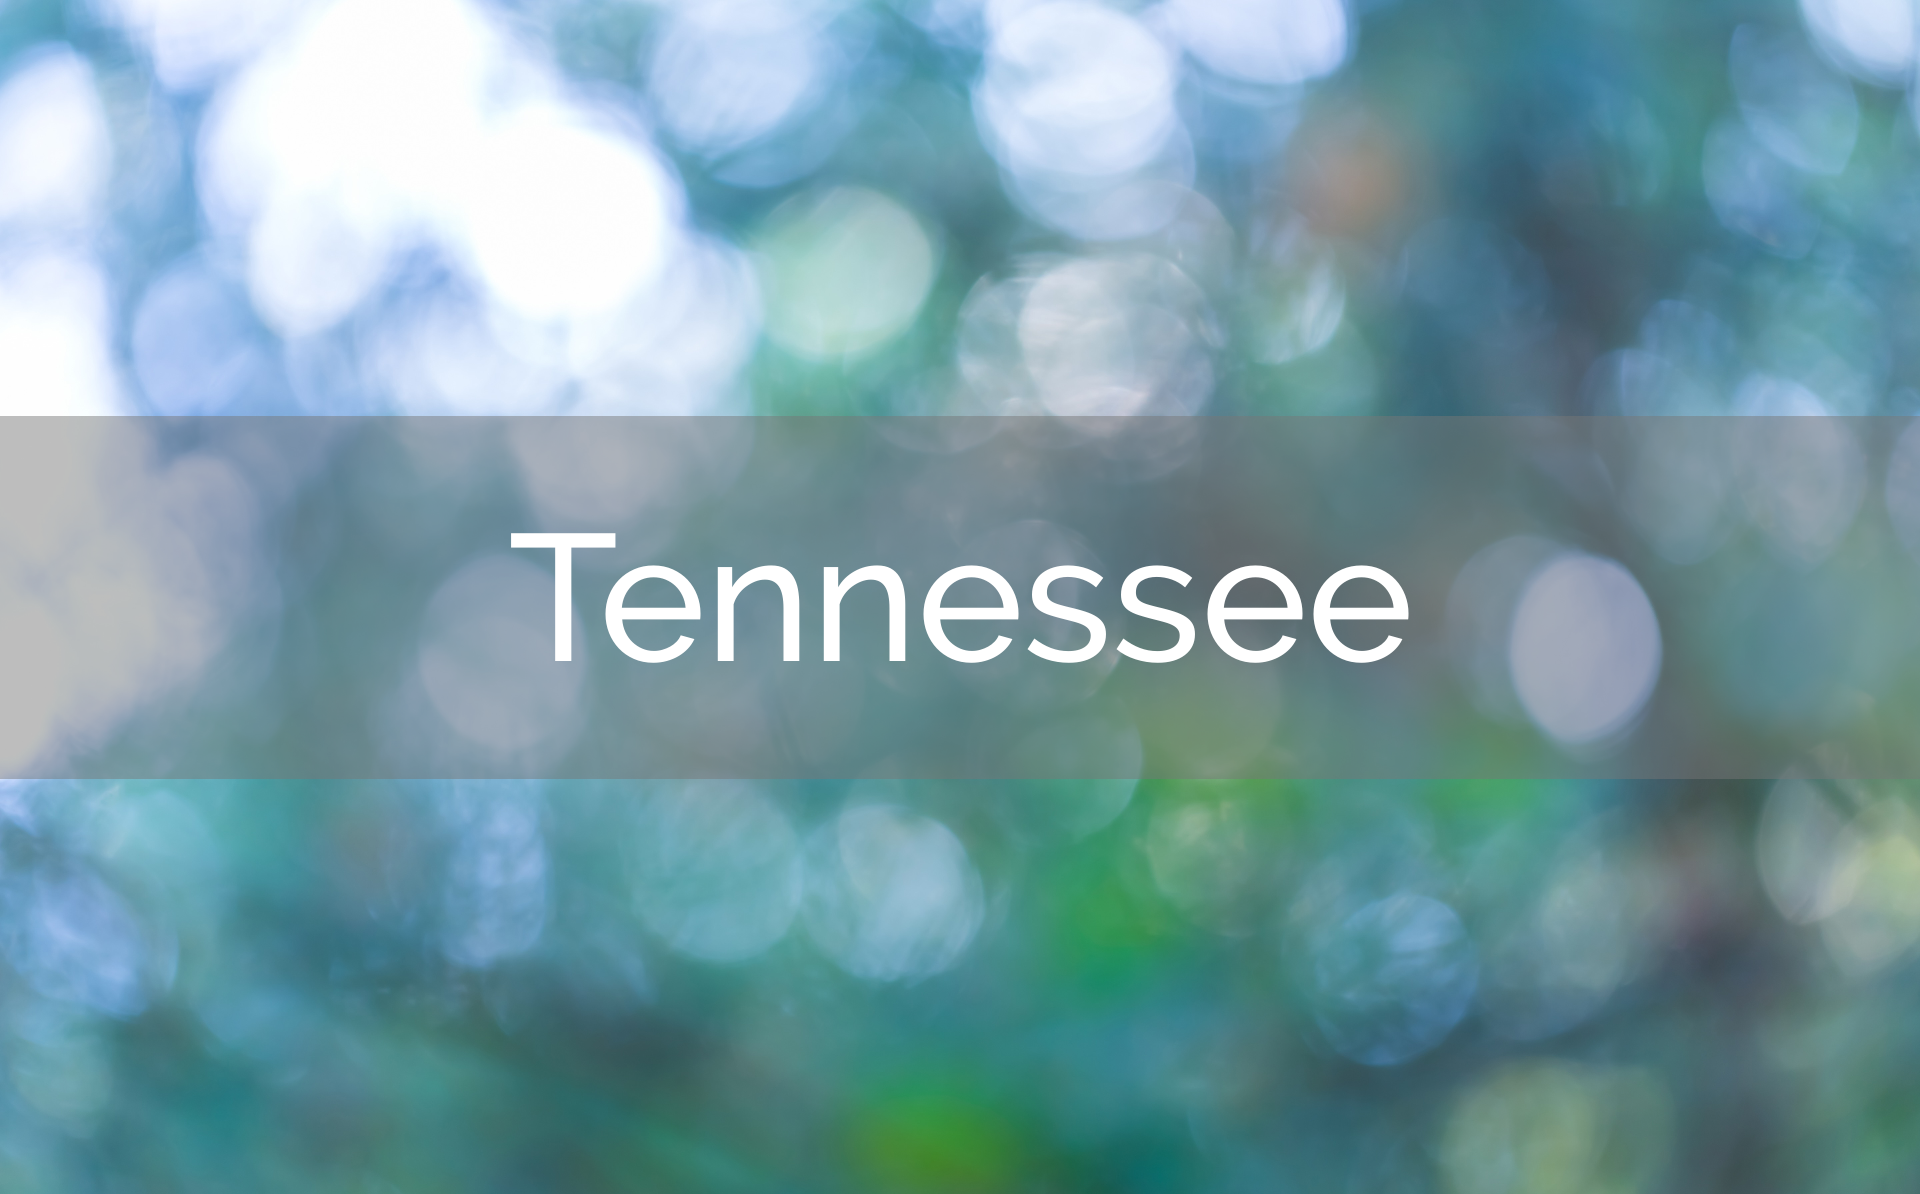 Tennessee0.png